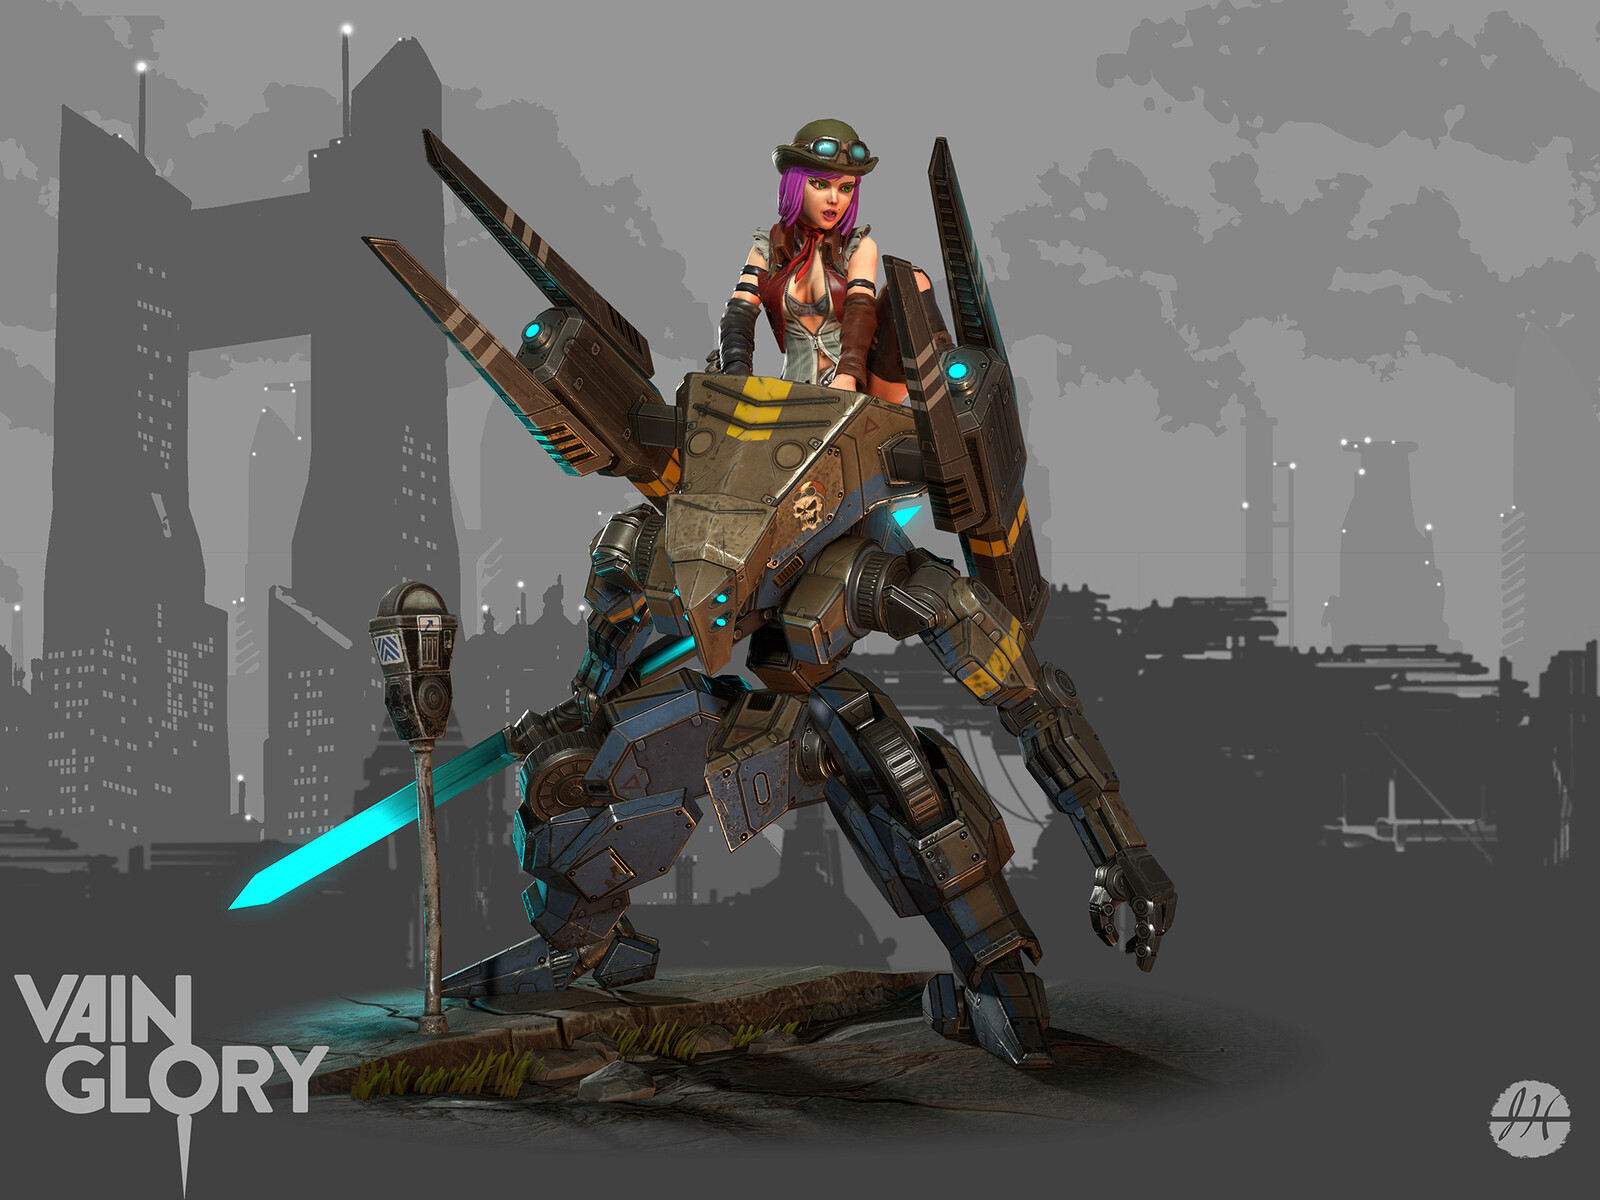 Joule PC from Vainglory